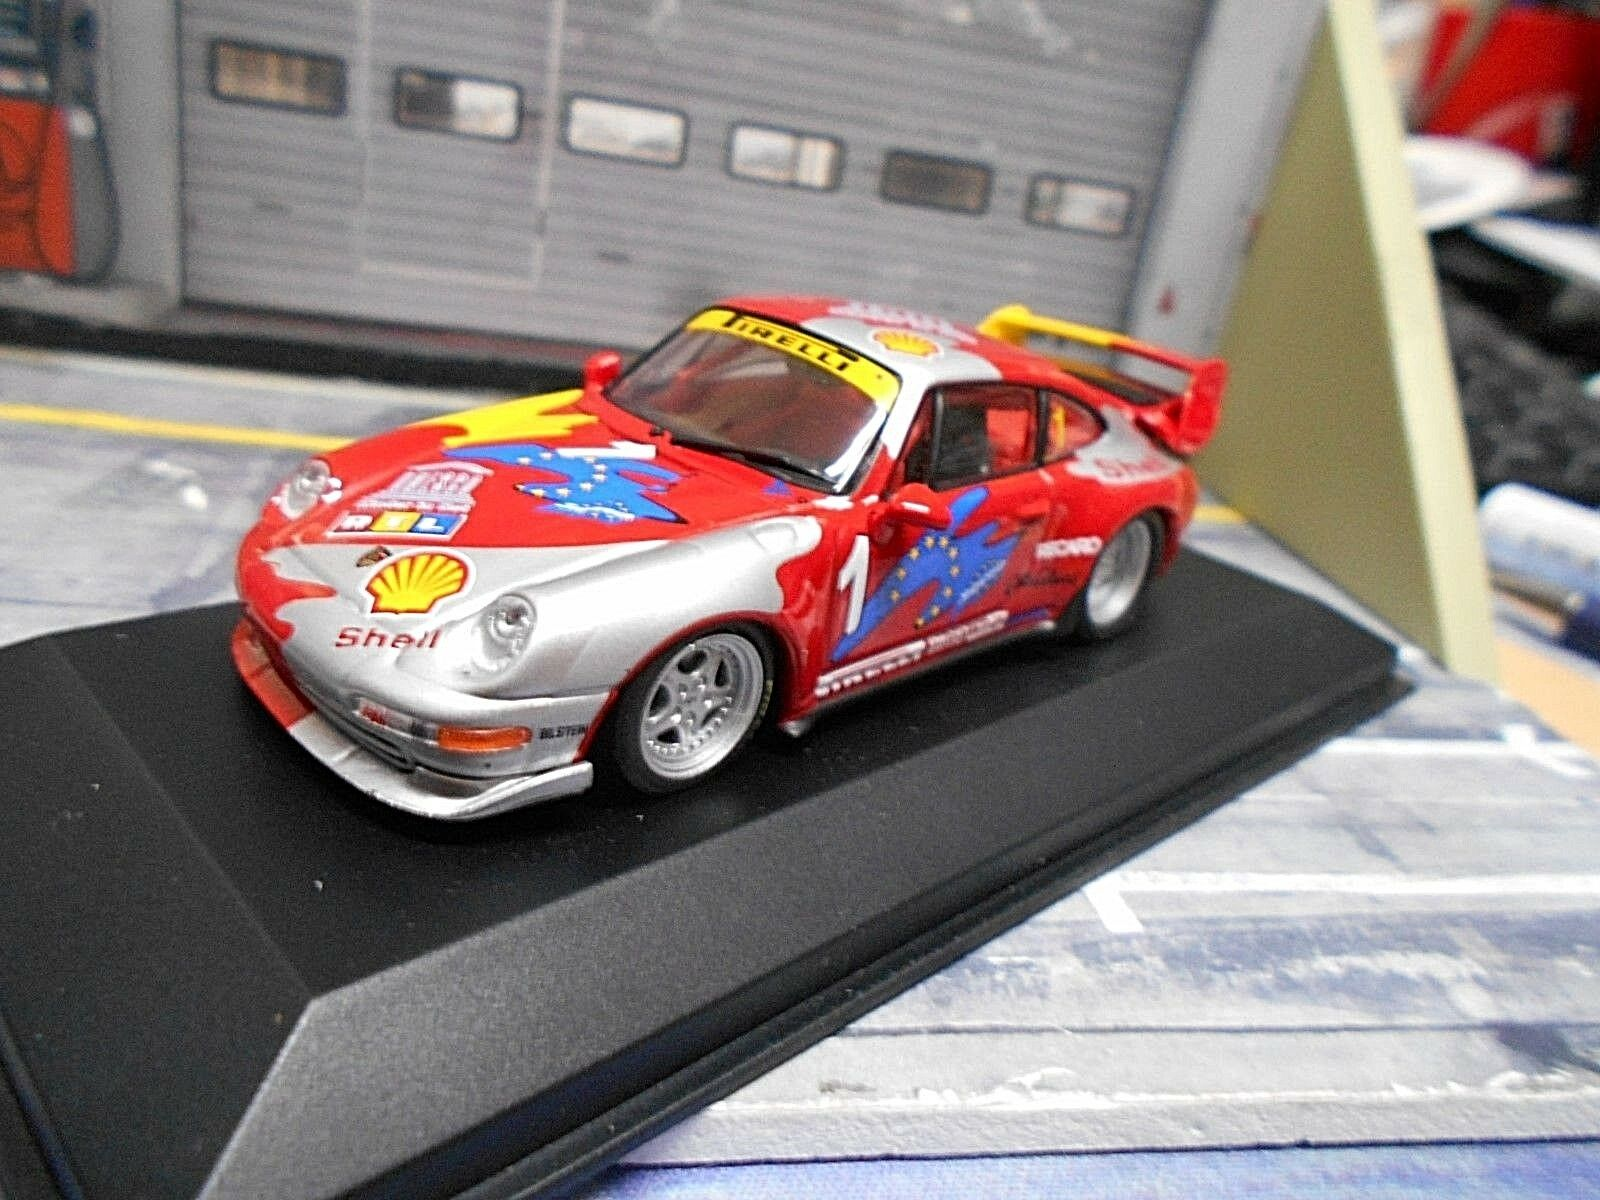 PORSCHE 911 993 gt2 RS CARRERA CUP SUPER  1 VIP RTL Shell 1995 Minichamps 1:43